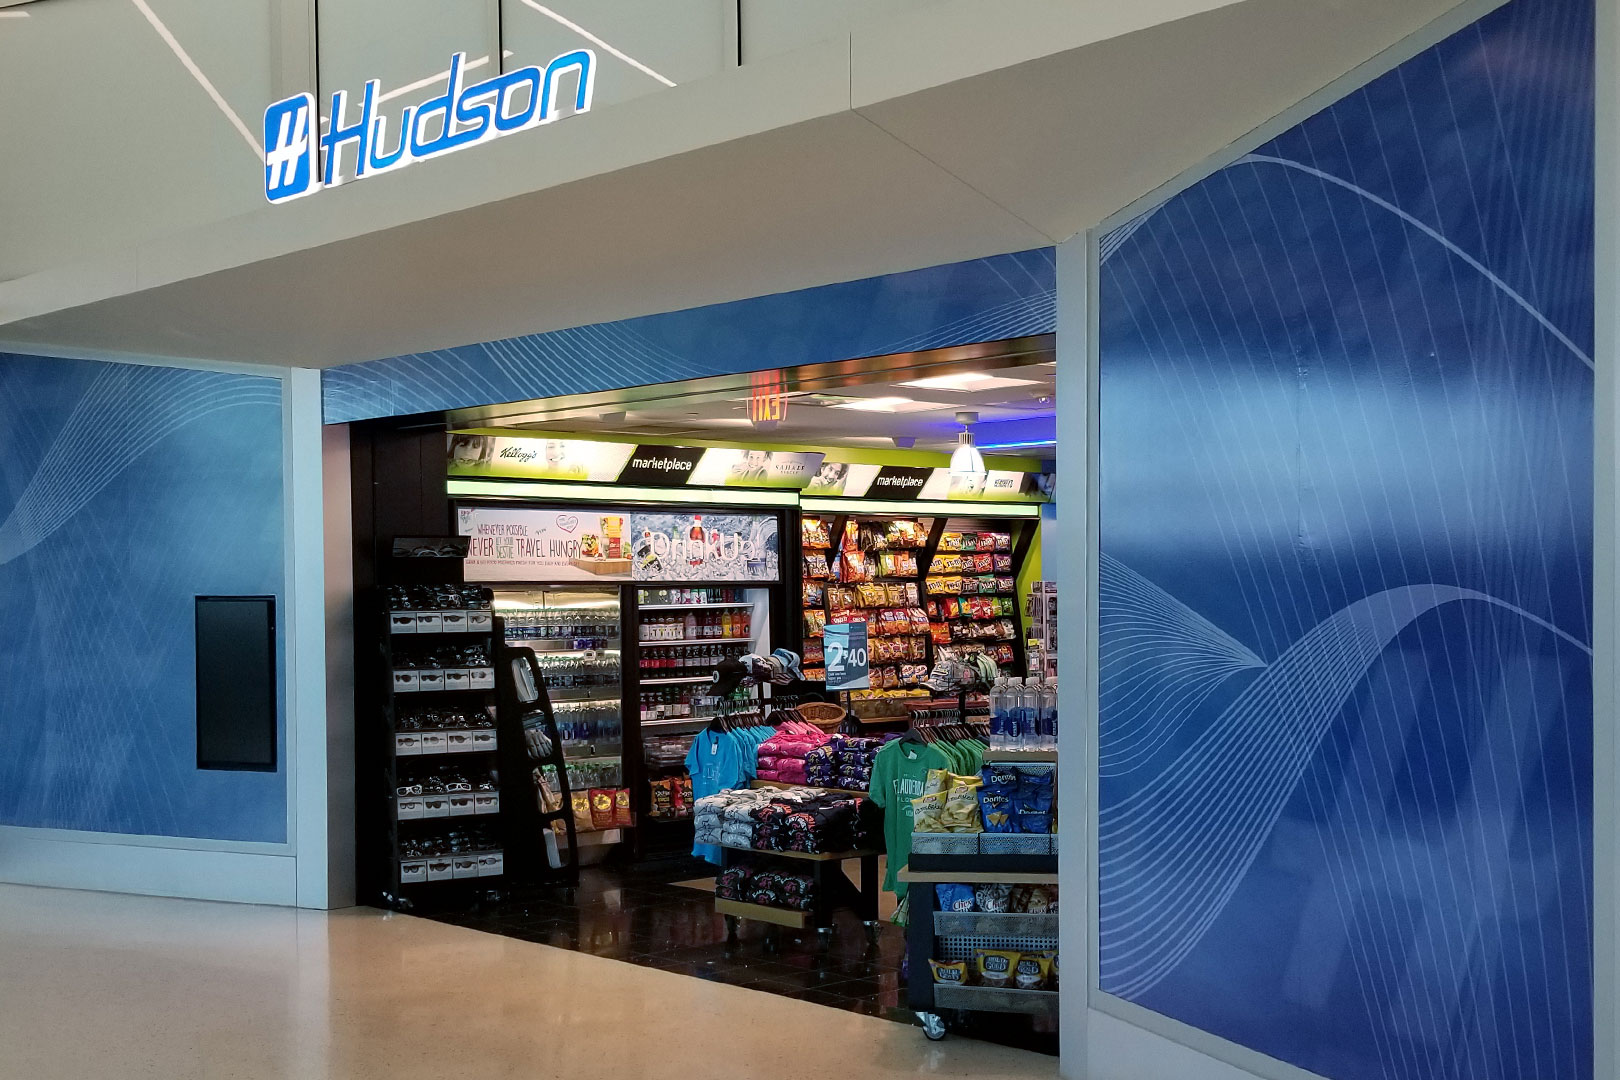 FLL Hudson Airport Retail Fixtures Storefront